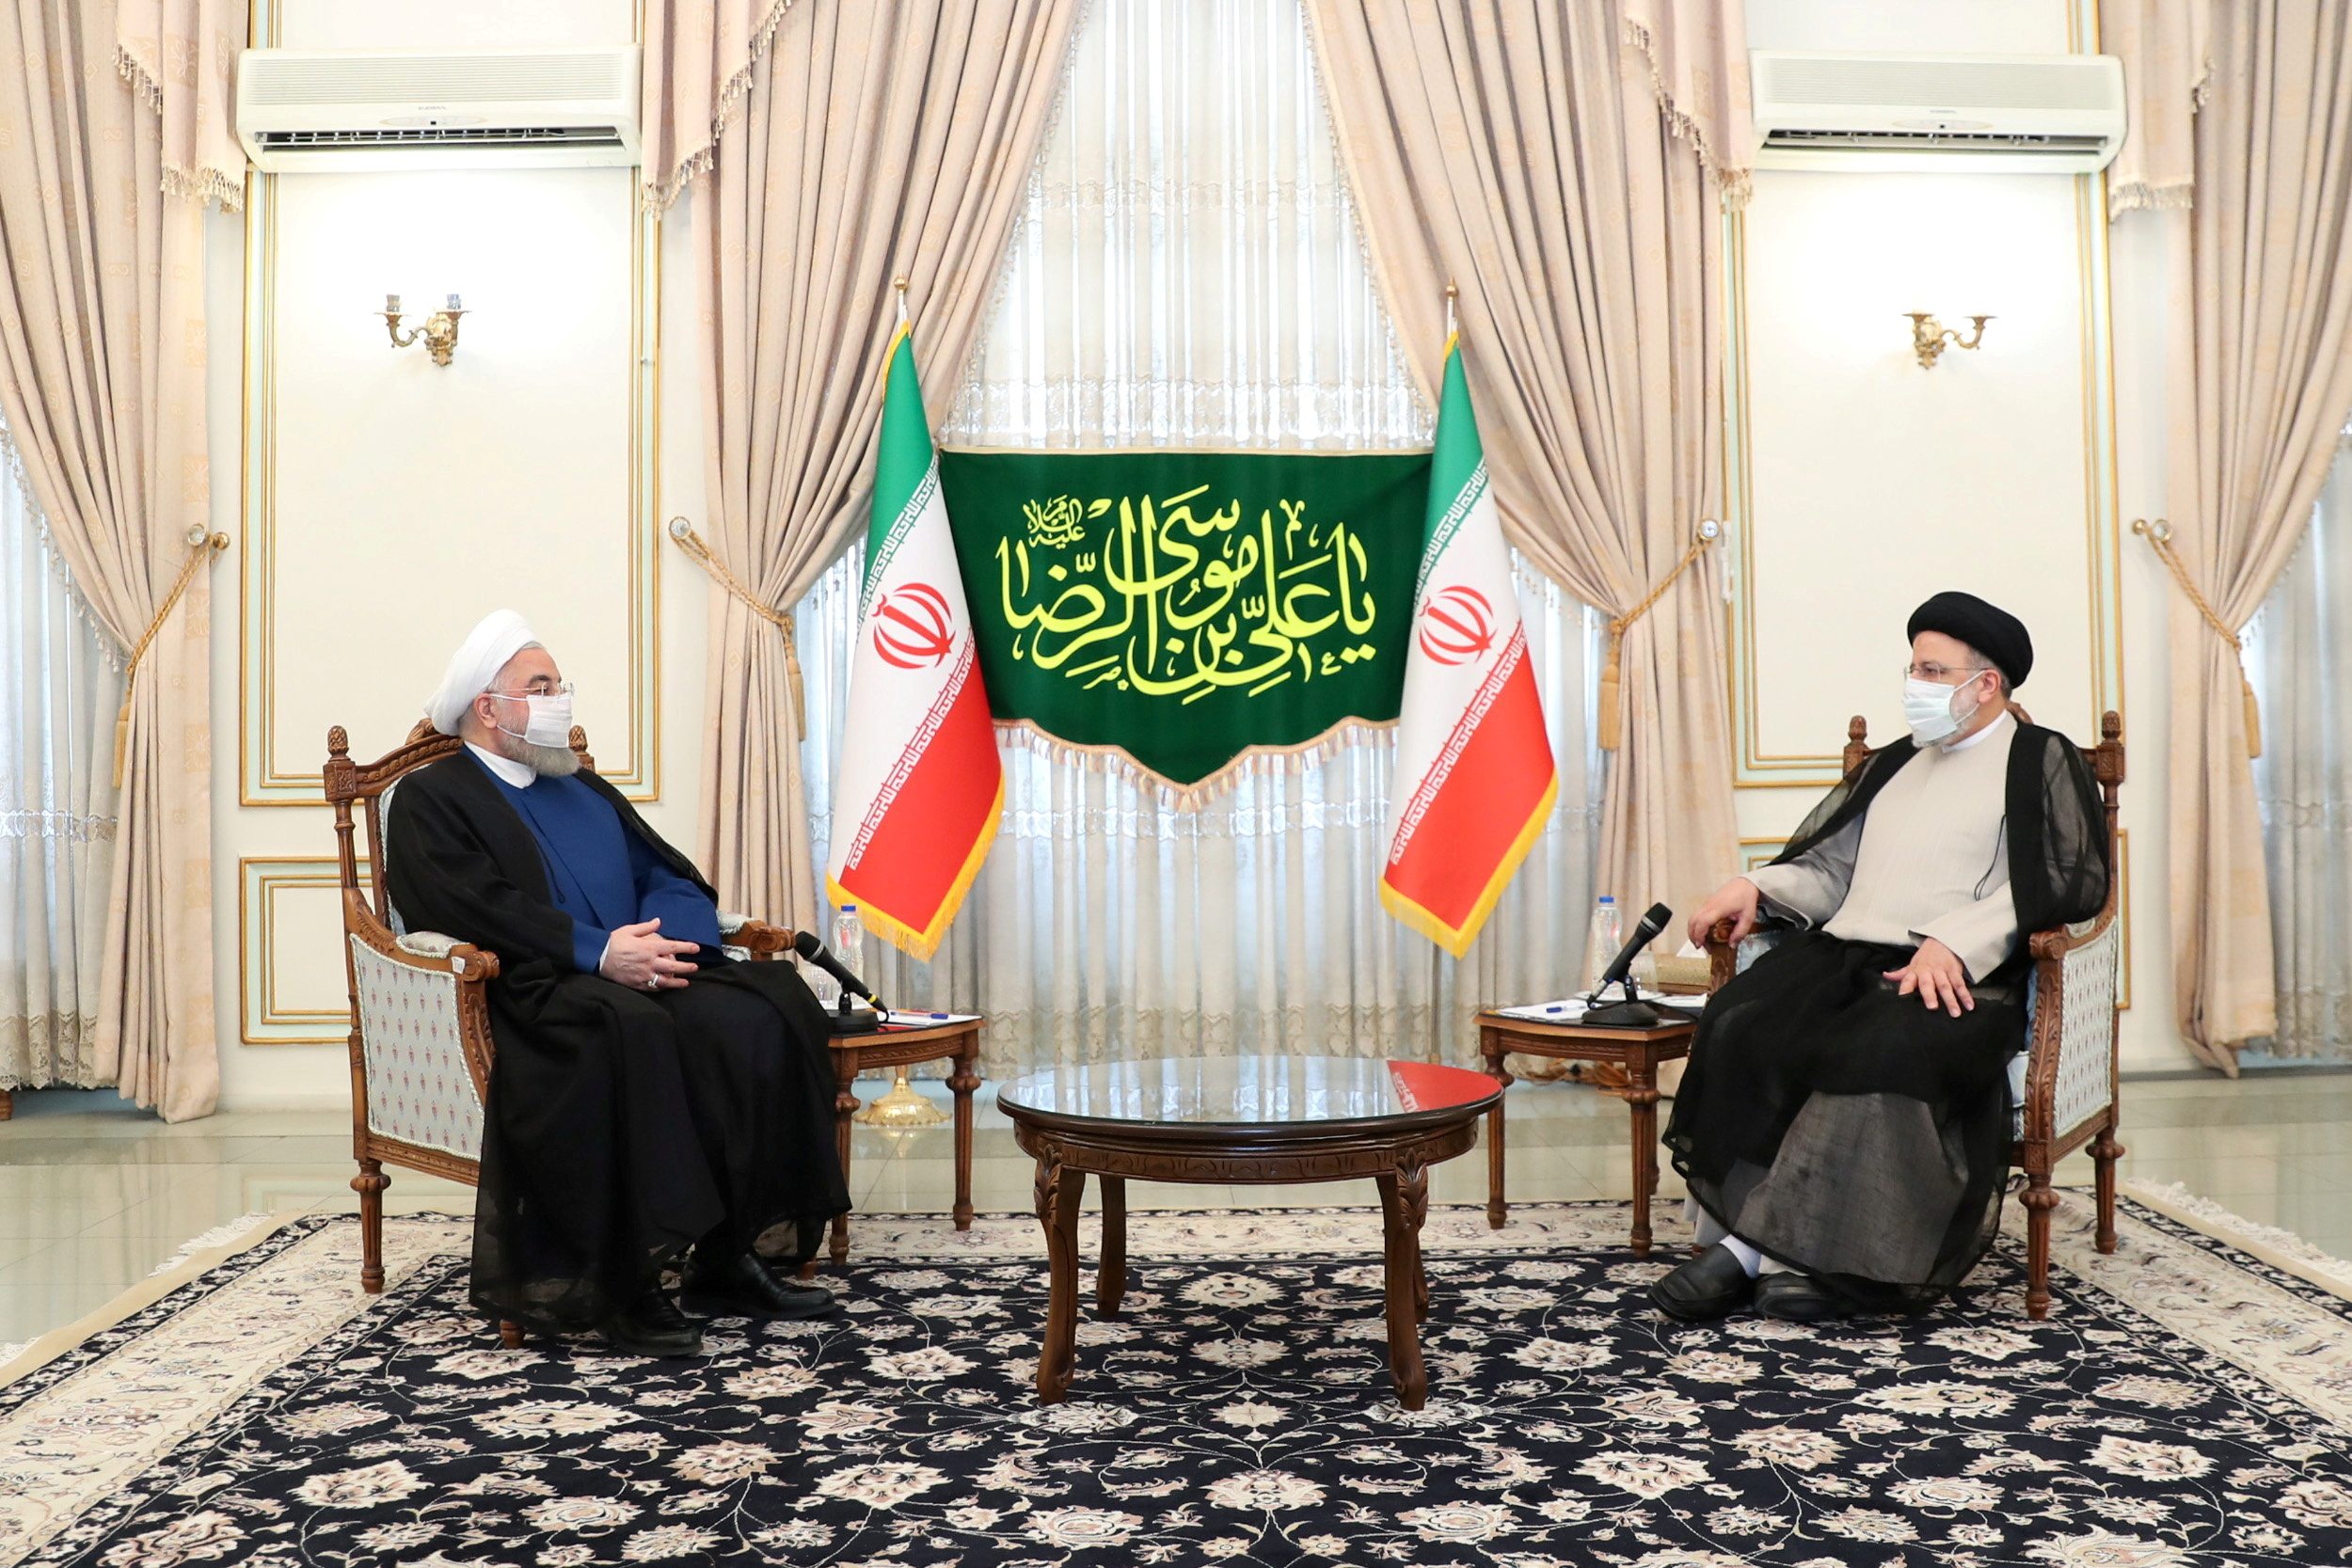 Iran's outgoing President Hassan Rouhani meets with Iran's President-elect Ebrahim Raisi in Tehran, Iran June 19, 2021. Official Presidential website/Handout via REUTERS